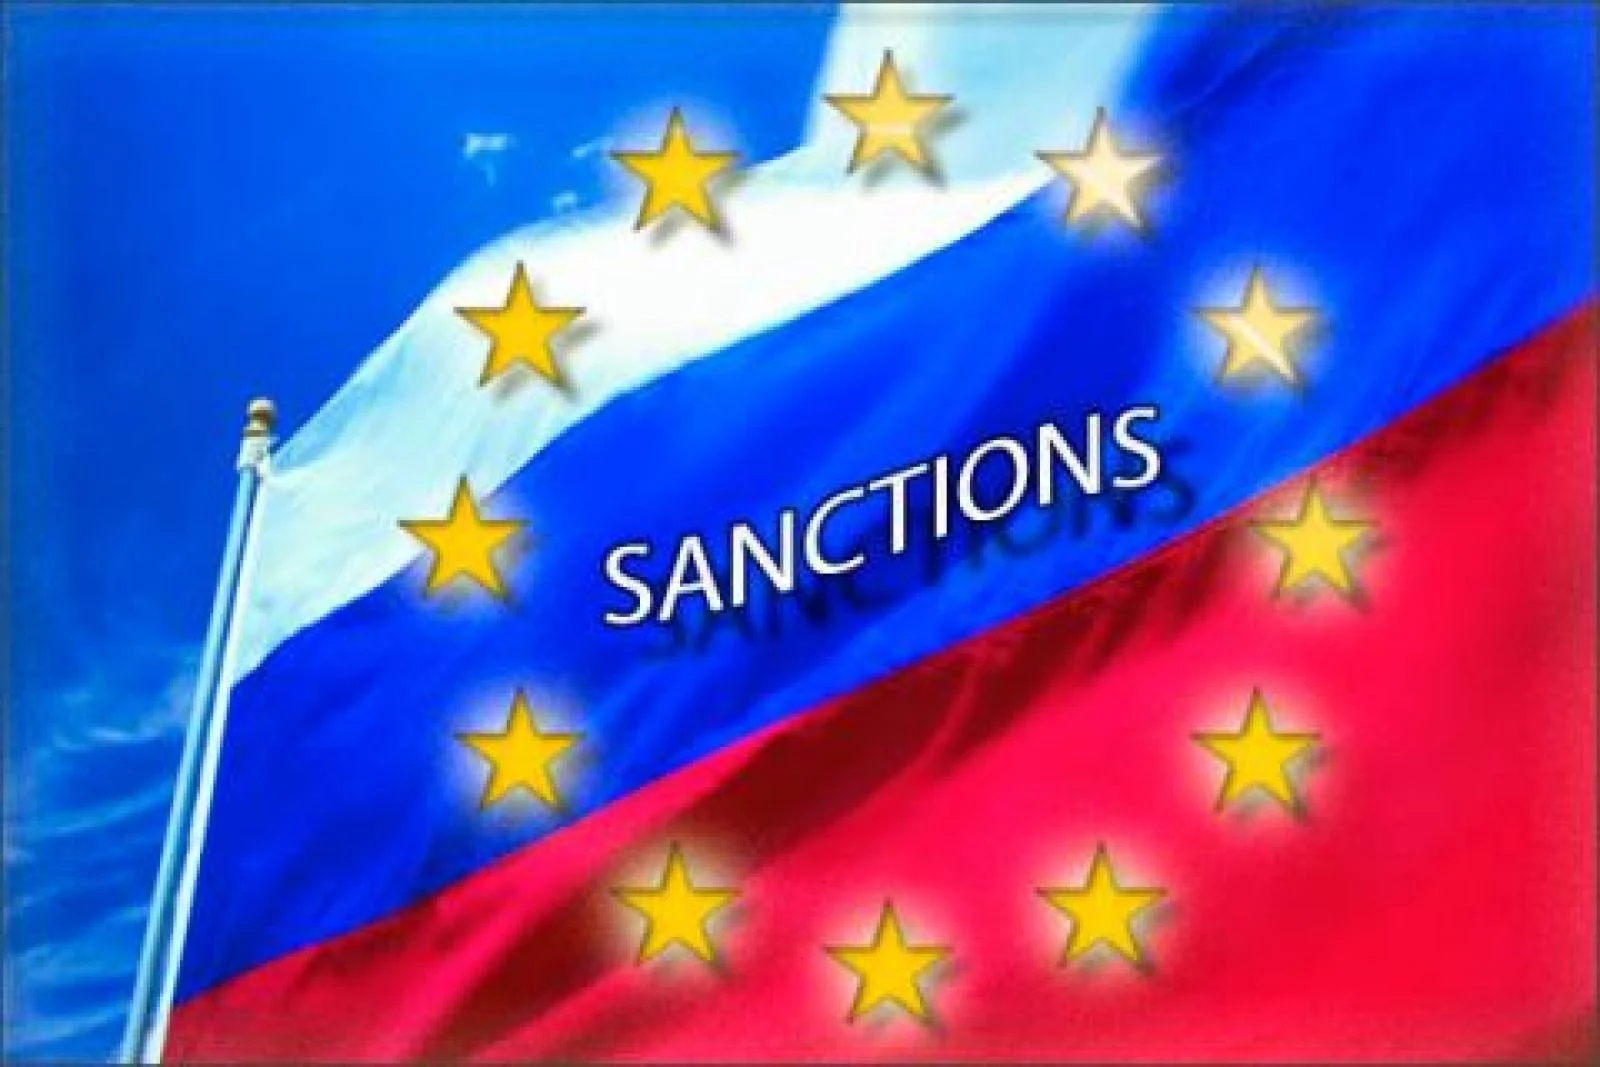 The EU has come up with new sanctions against Russia